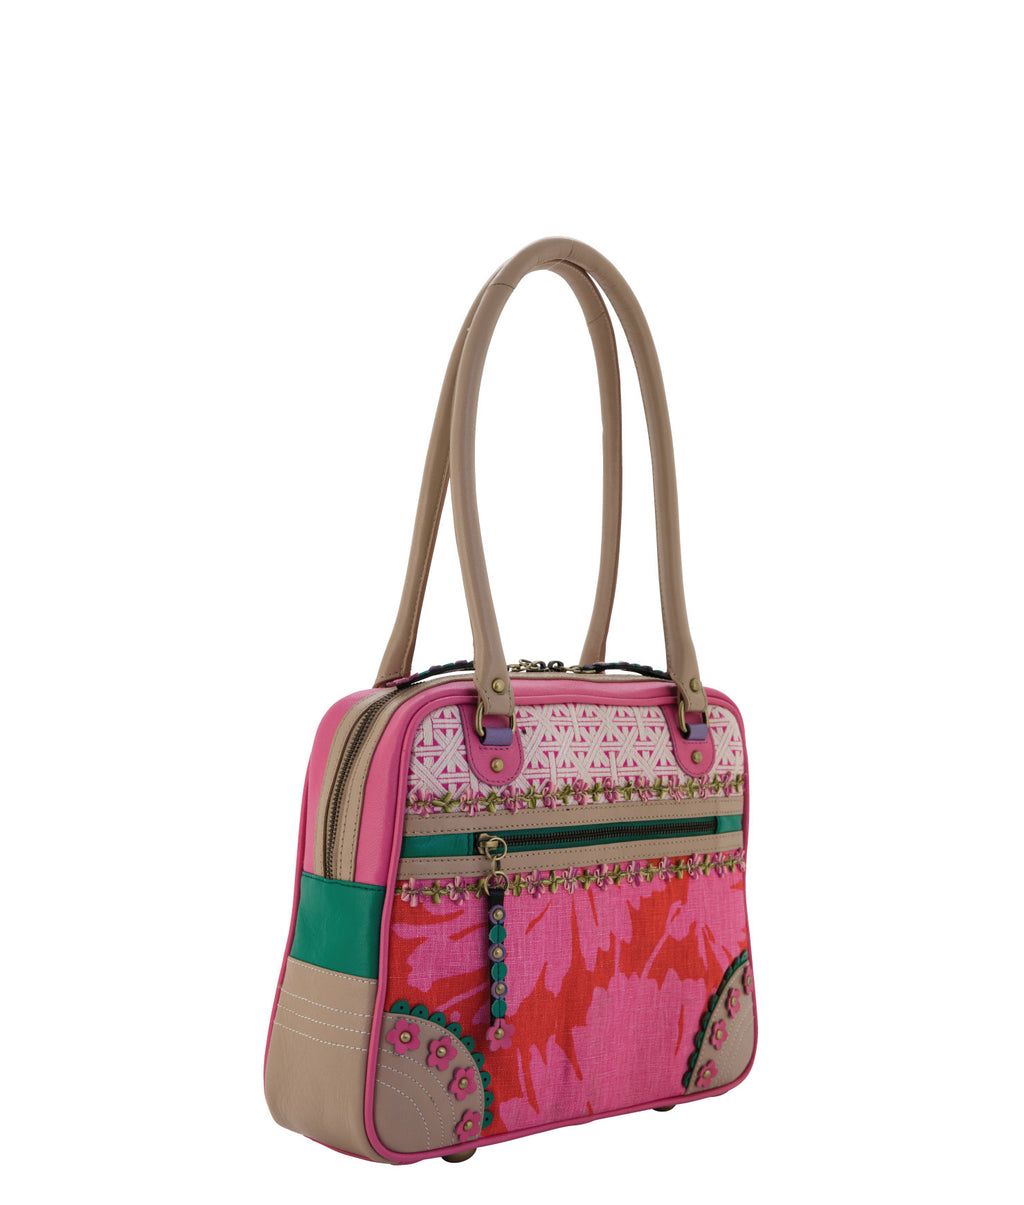 NINA Shoulder Bag - Pink Champagne